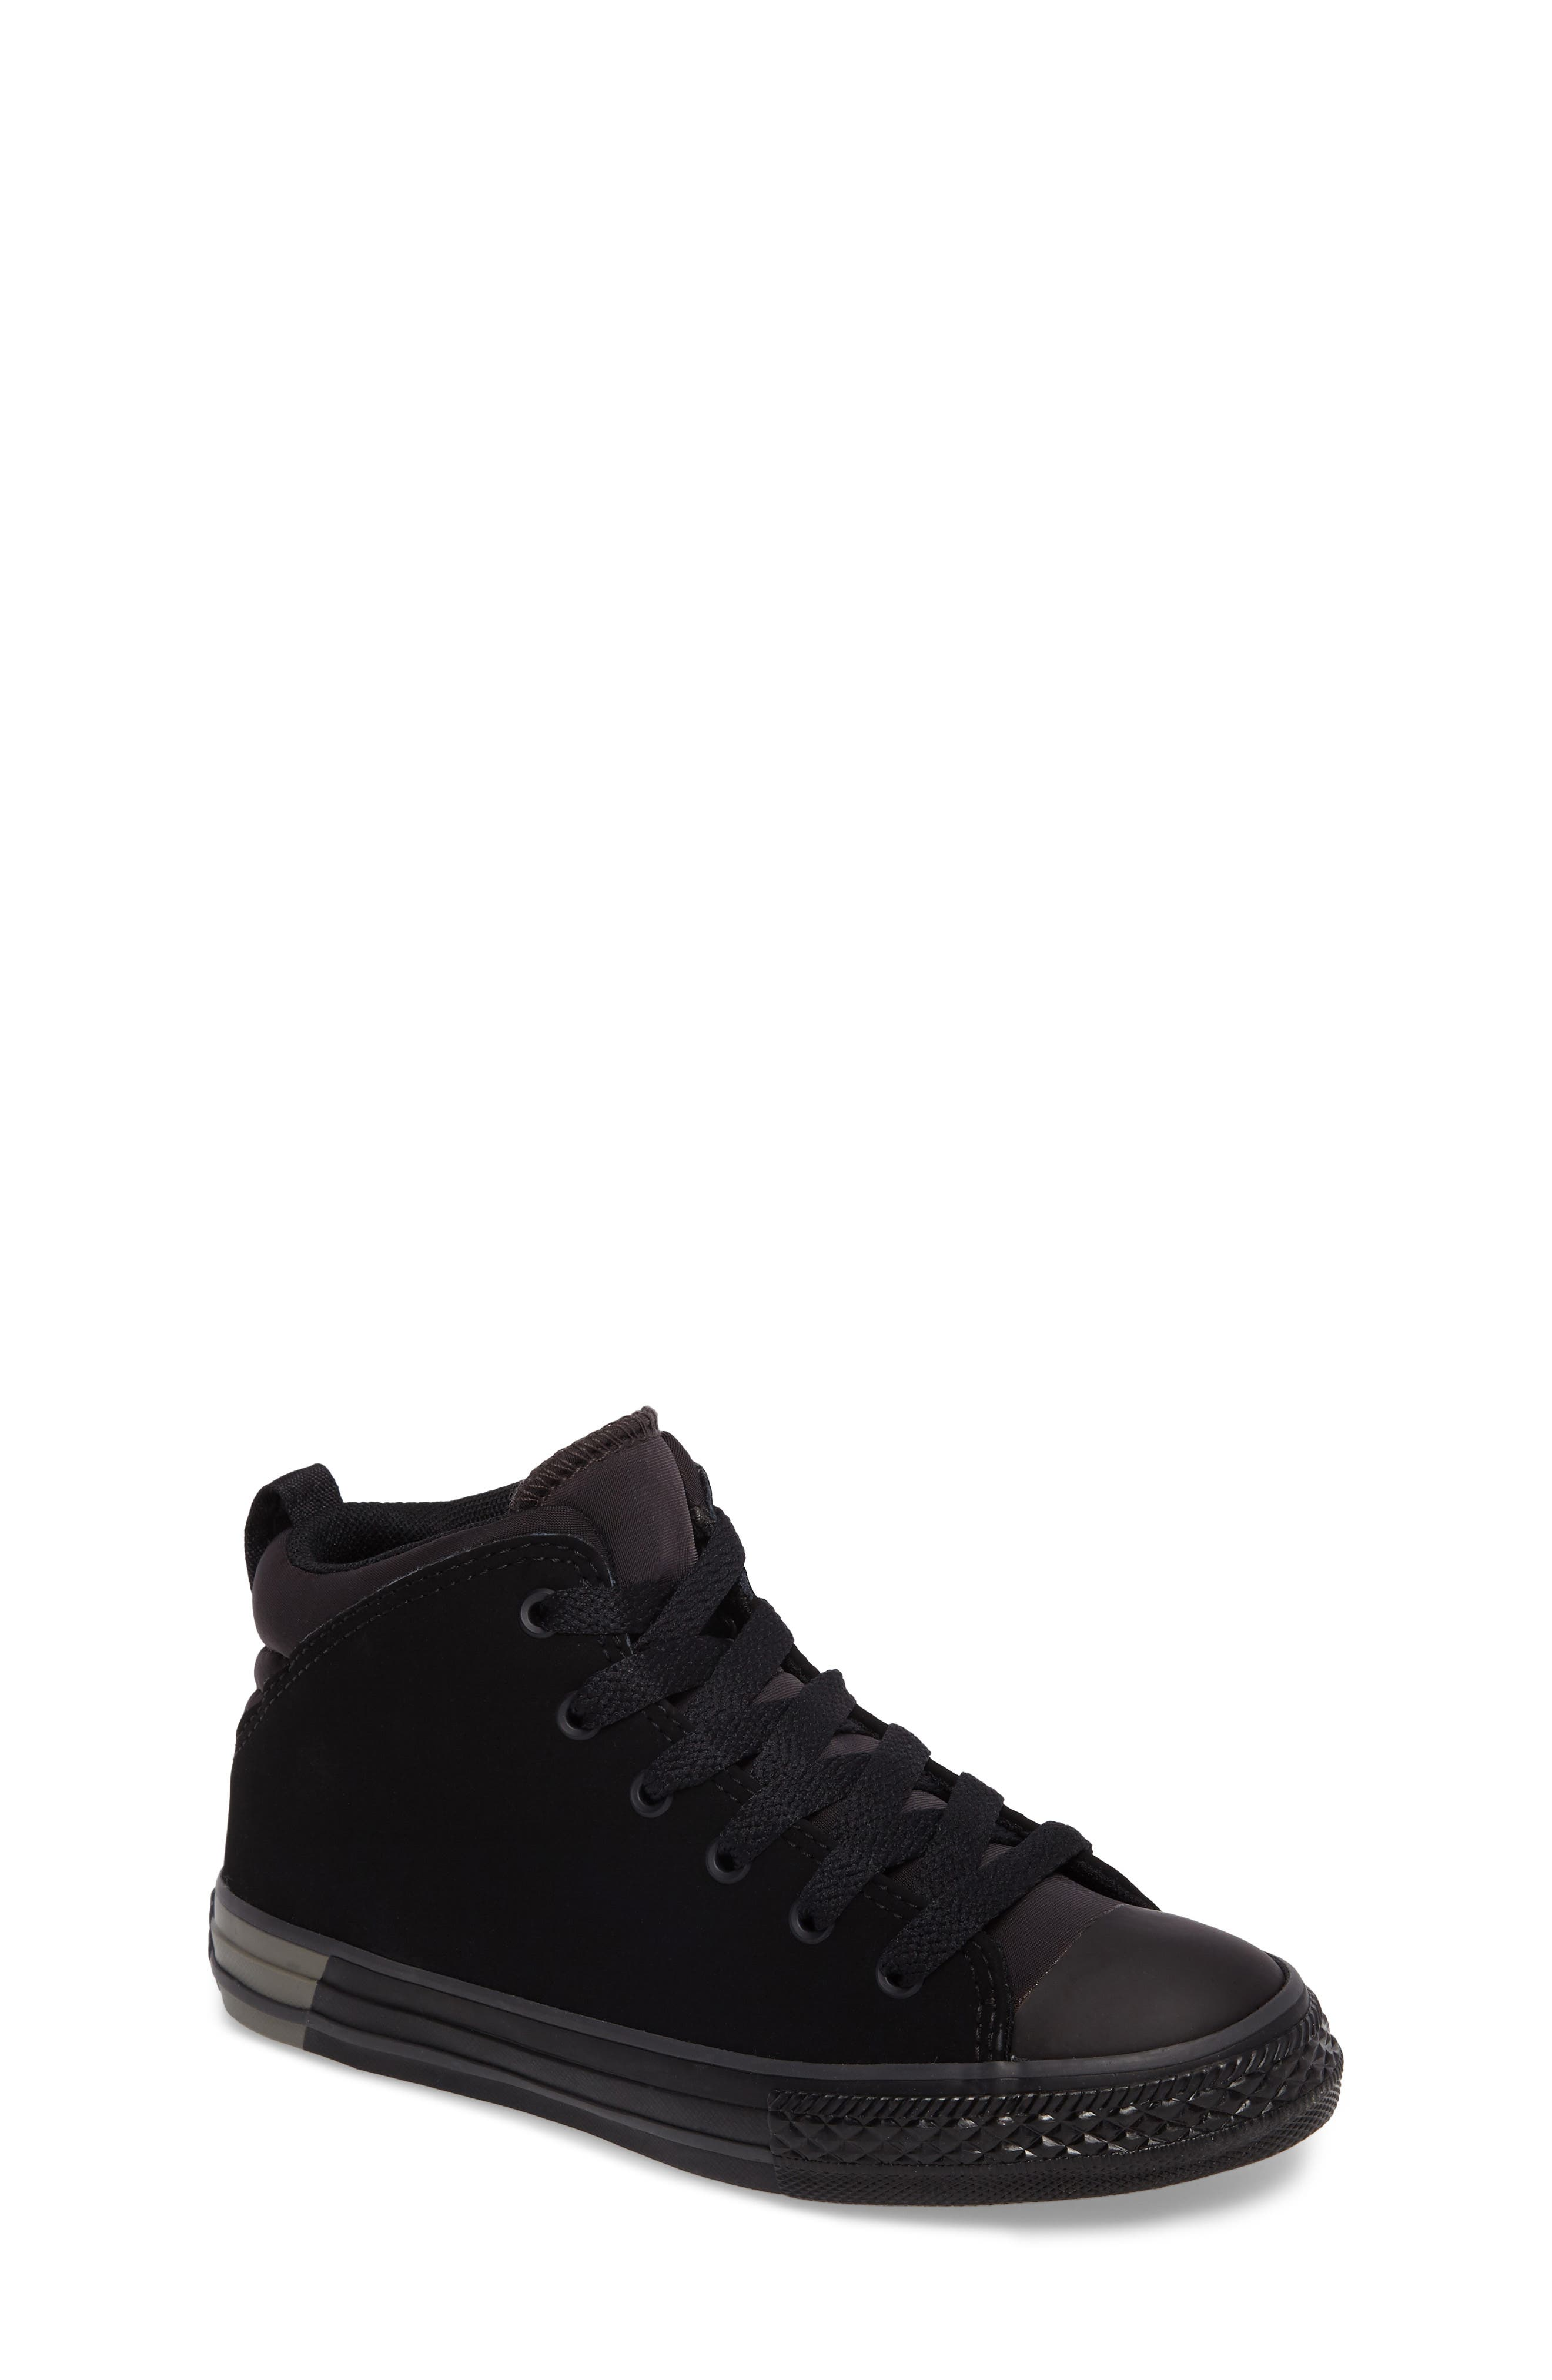 Chuck Taylor<sup>®</sup> All Star<sup>®</sup> Official High Top Sneaker,                             Main thumbnail 1, color,                             001